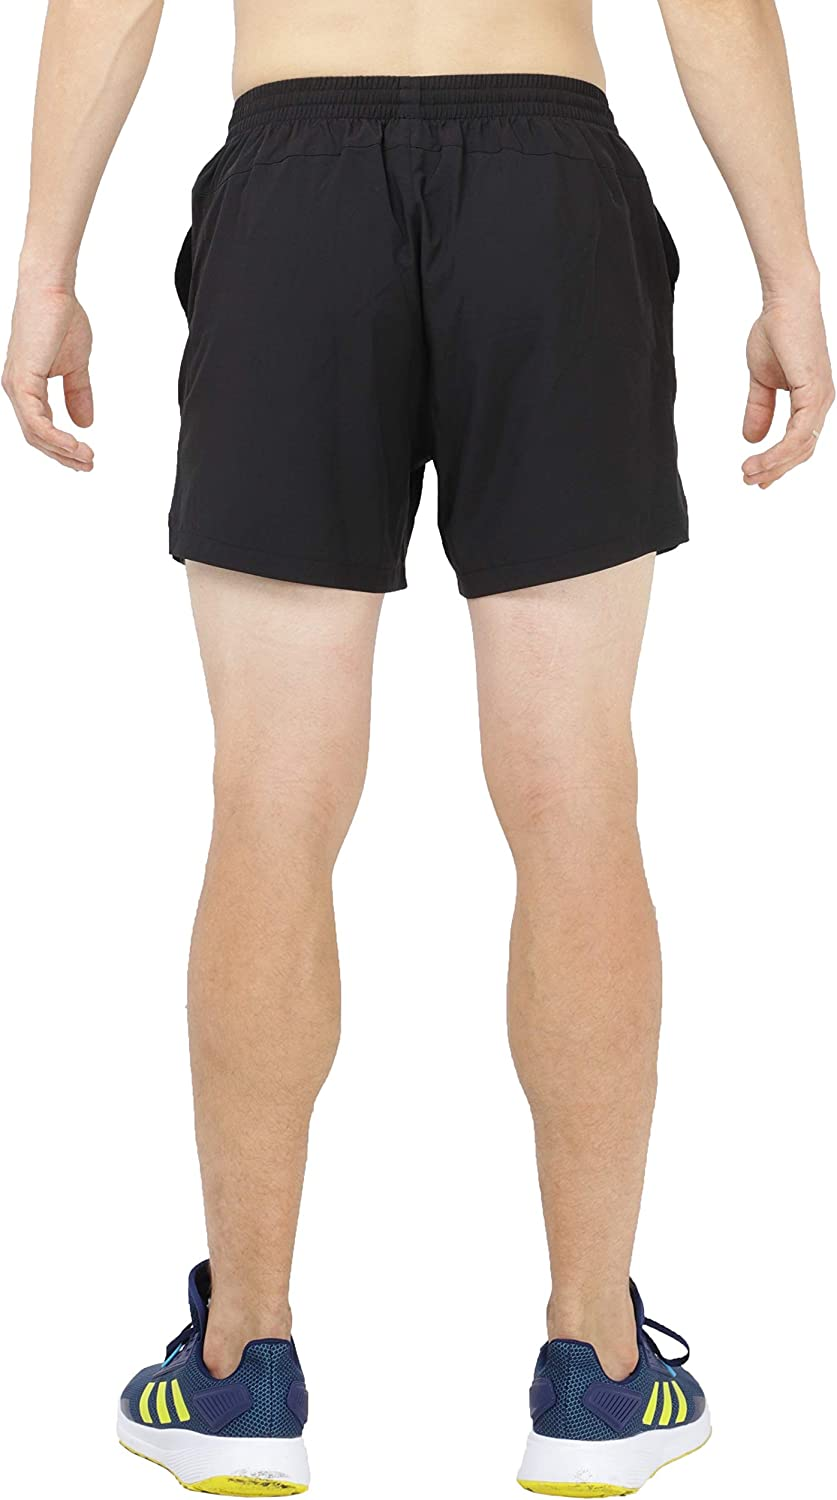 MIER Mens Workout Running Shorts Quick Dry Active 5 Inches Shorts with Pockets Lightweight and Breathable Black